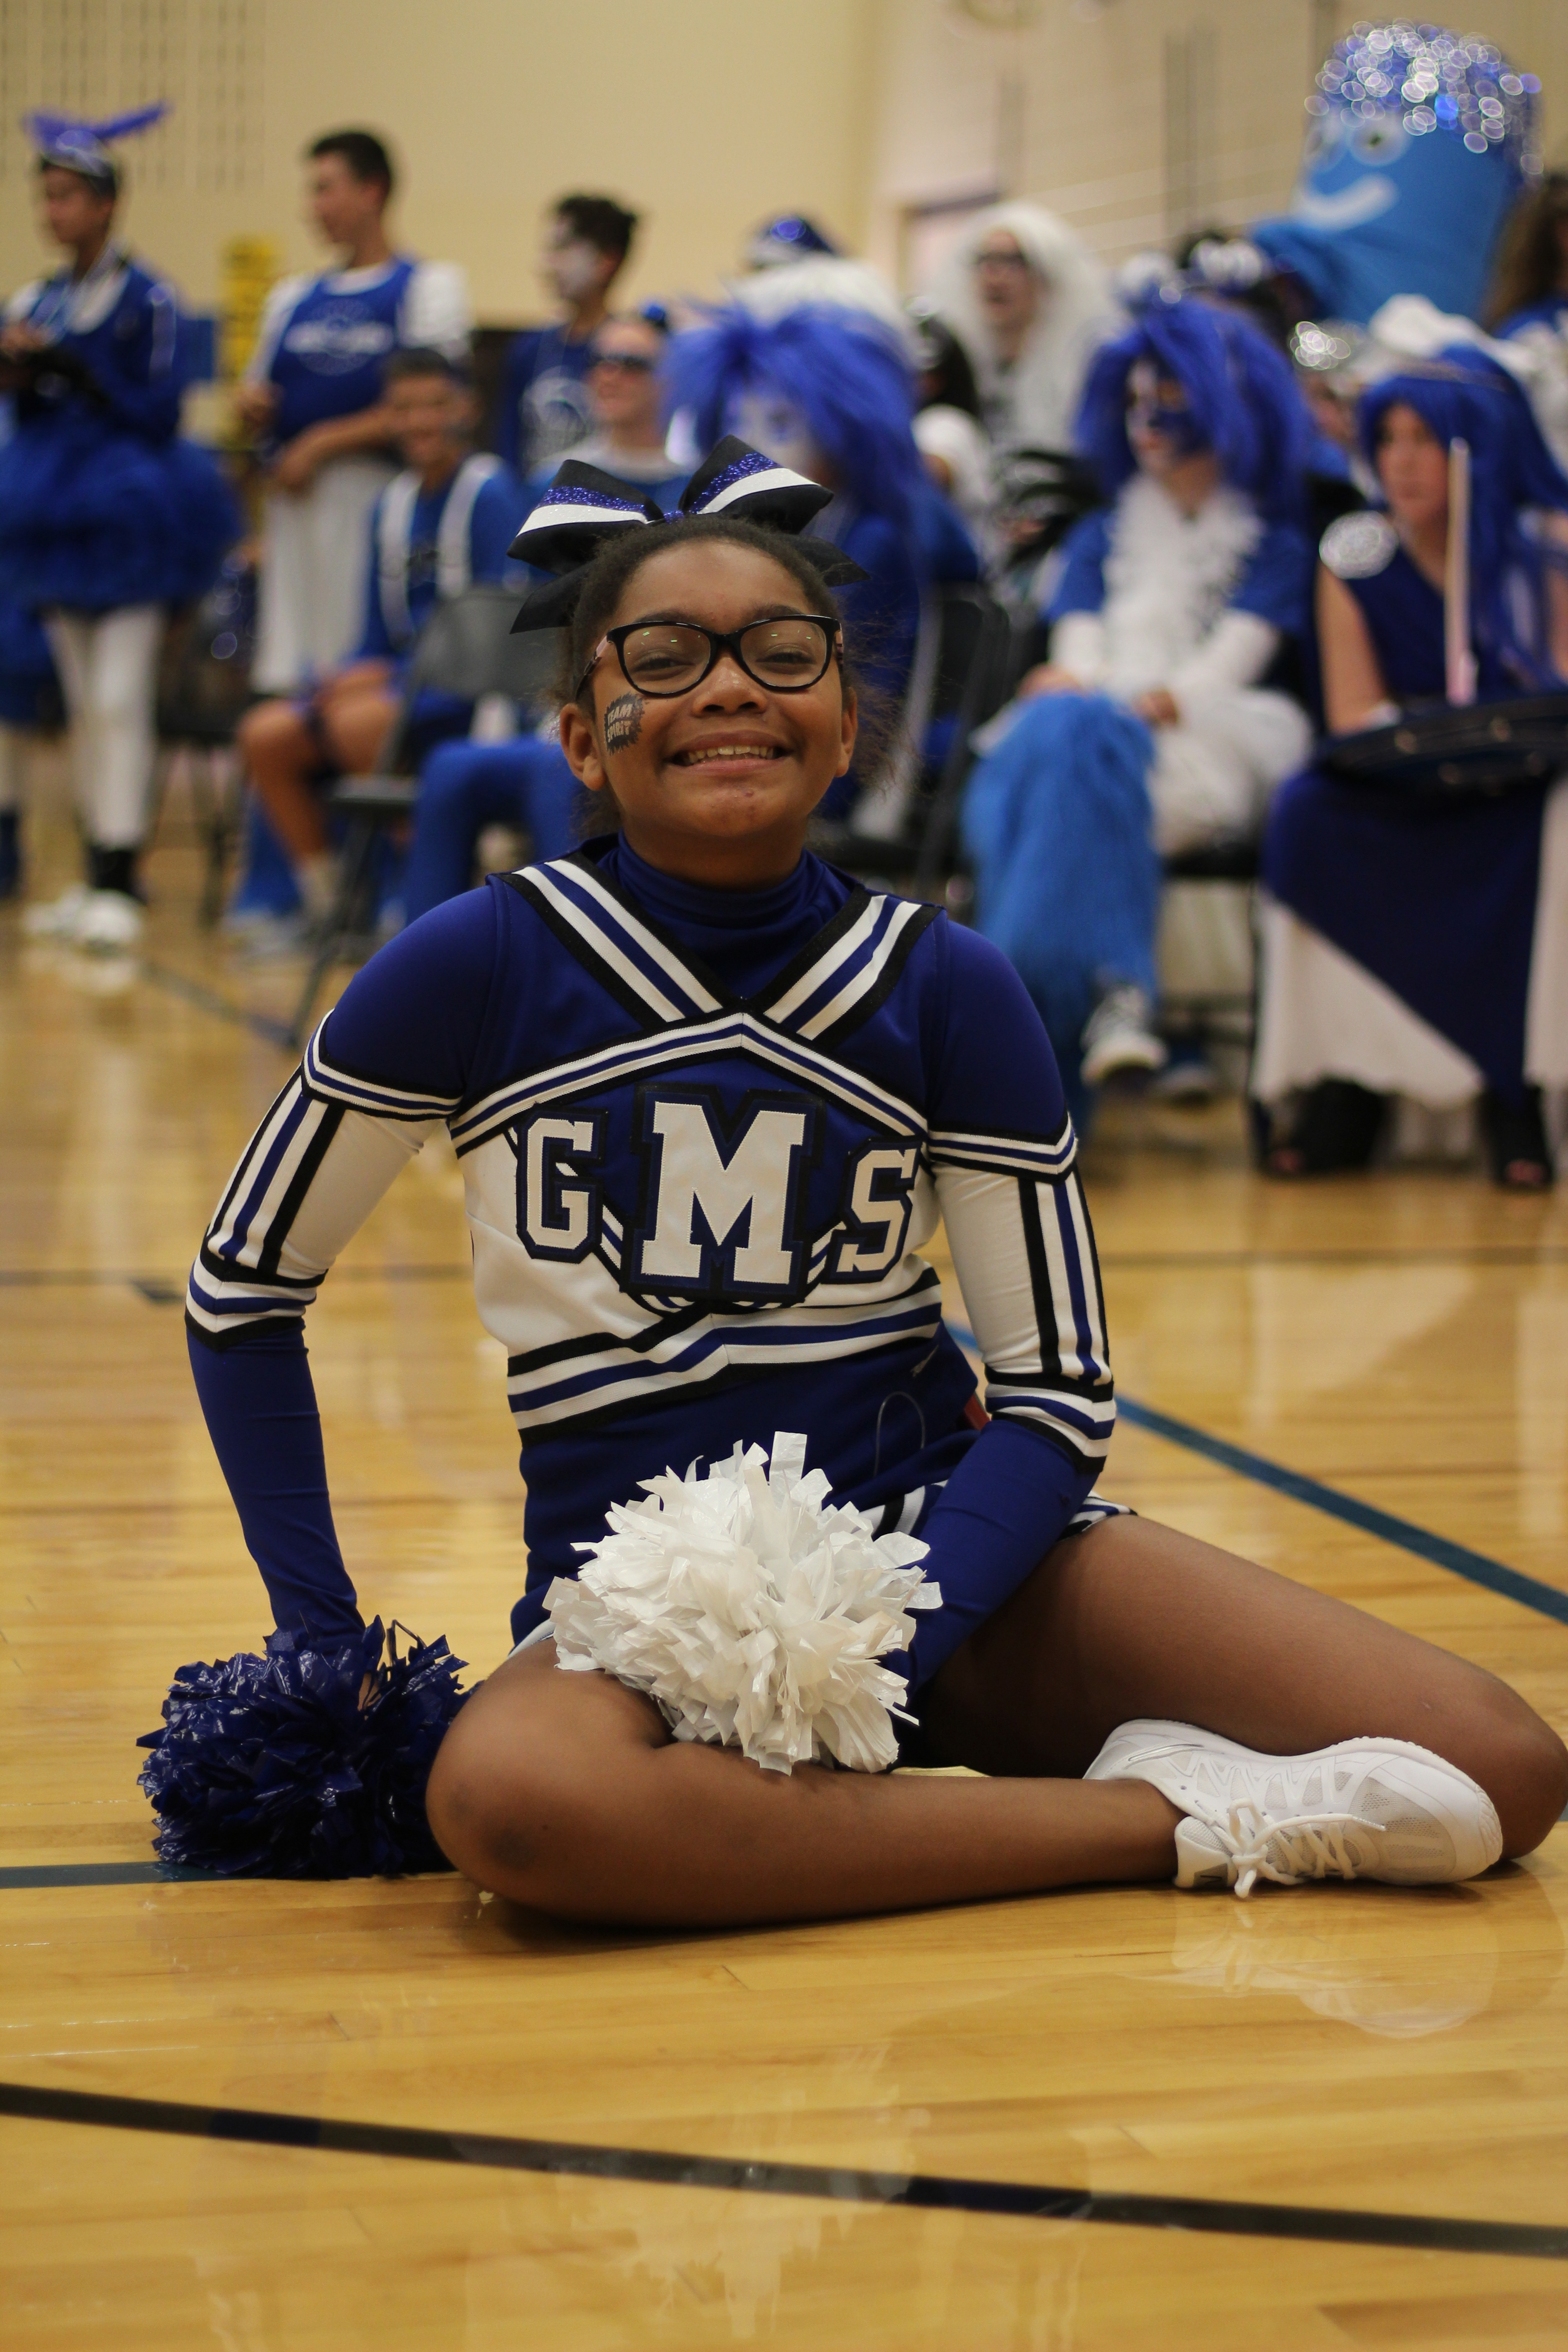 Cheerleader poses for a photo